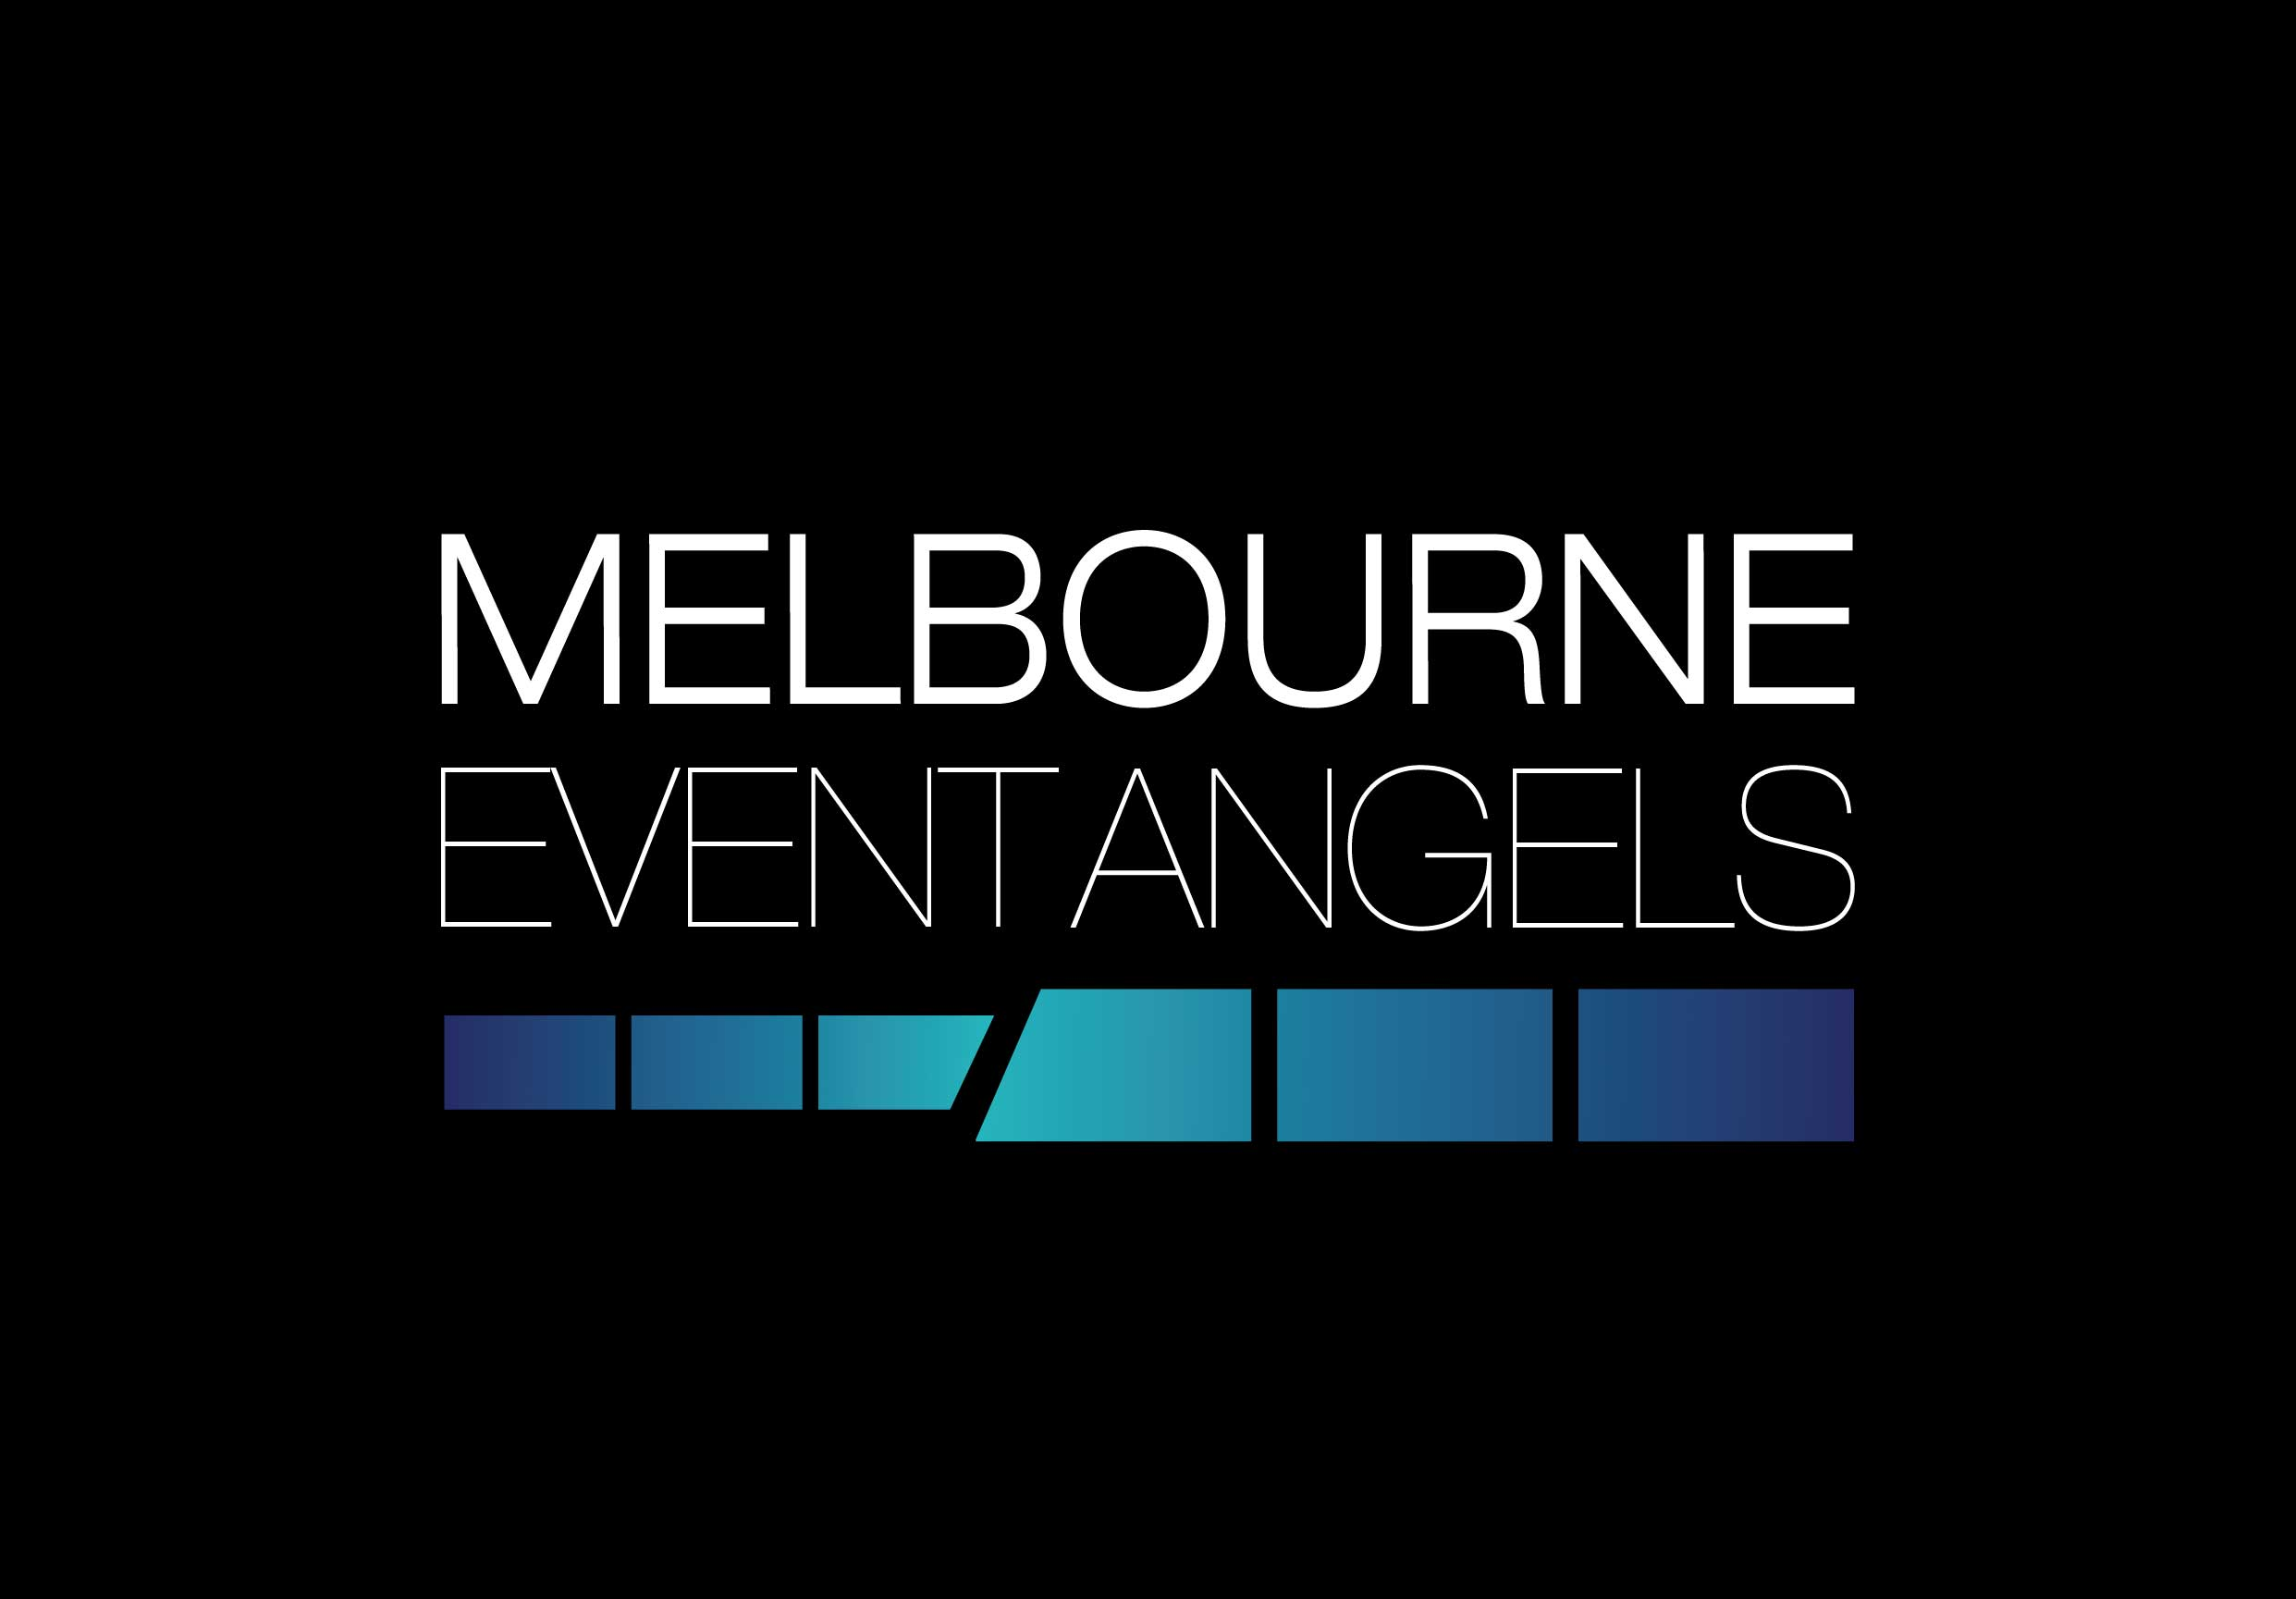 Melbourne-Event-Angels-BLACK-BG-WHITE-TXT-logo